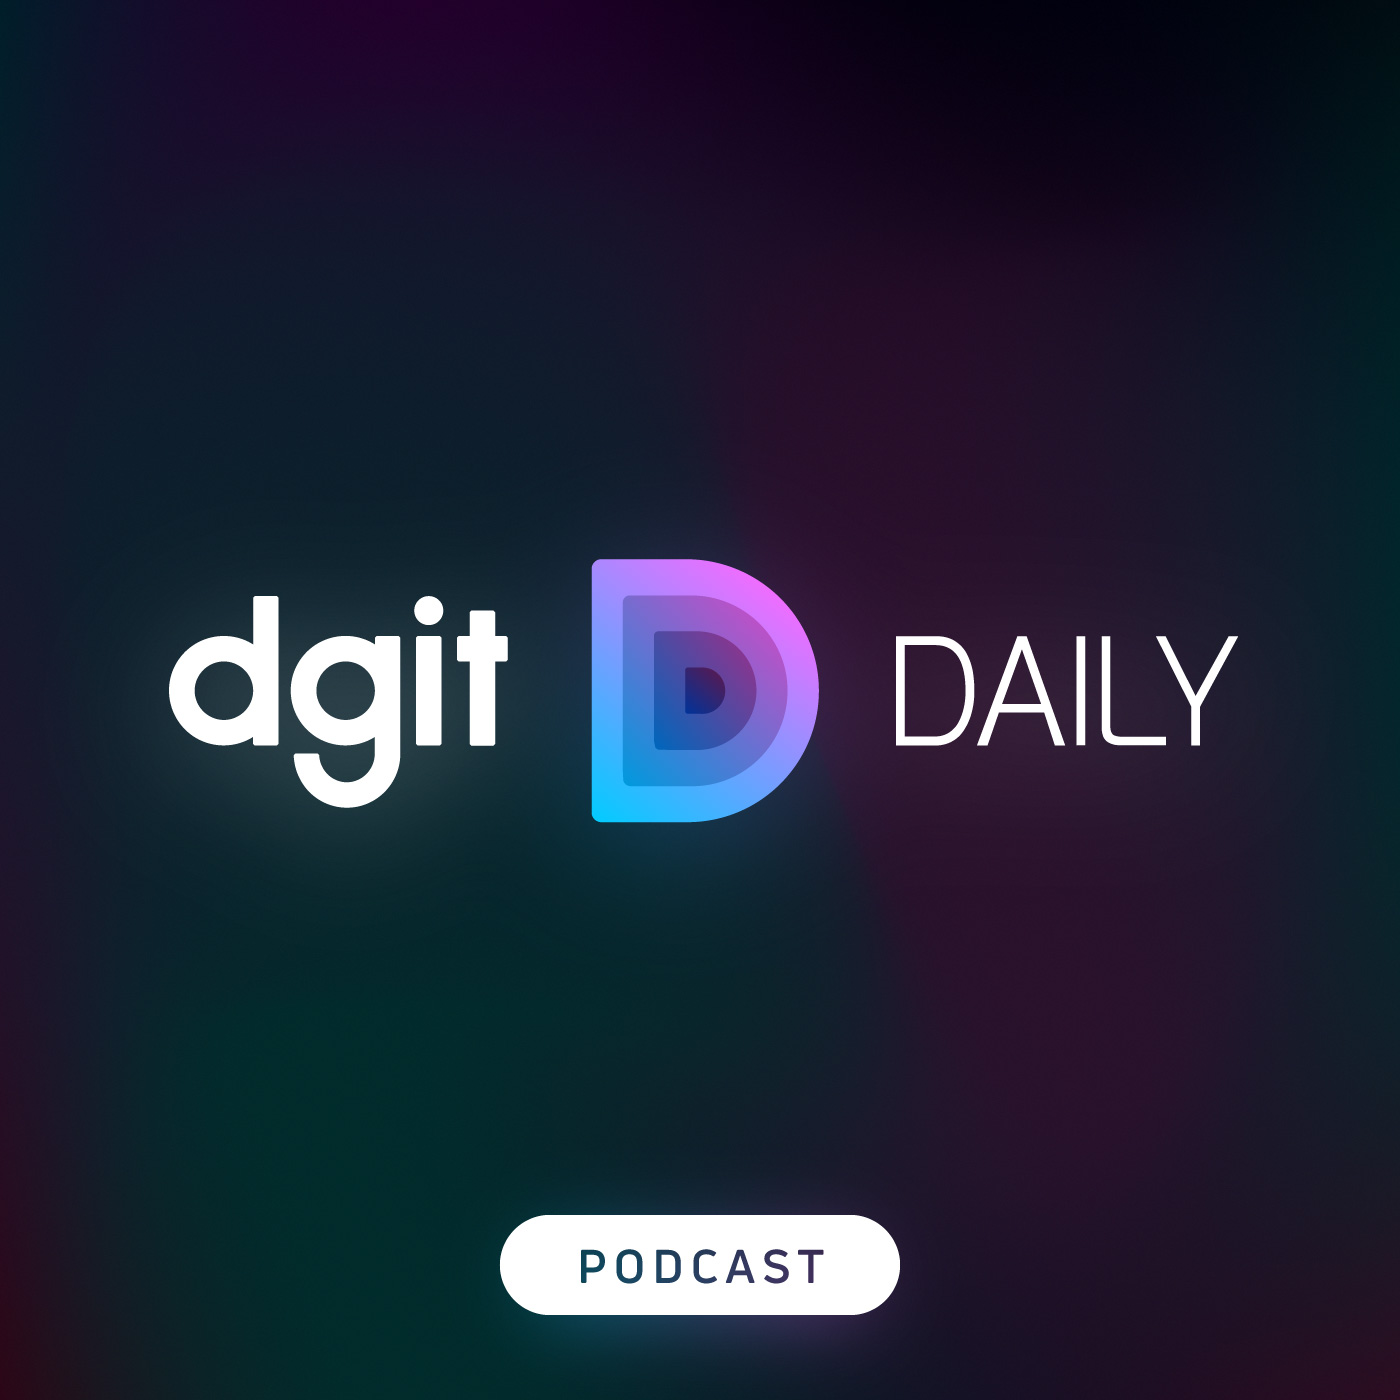 P30: The push into (periscope) photography - DGiT